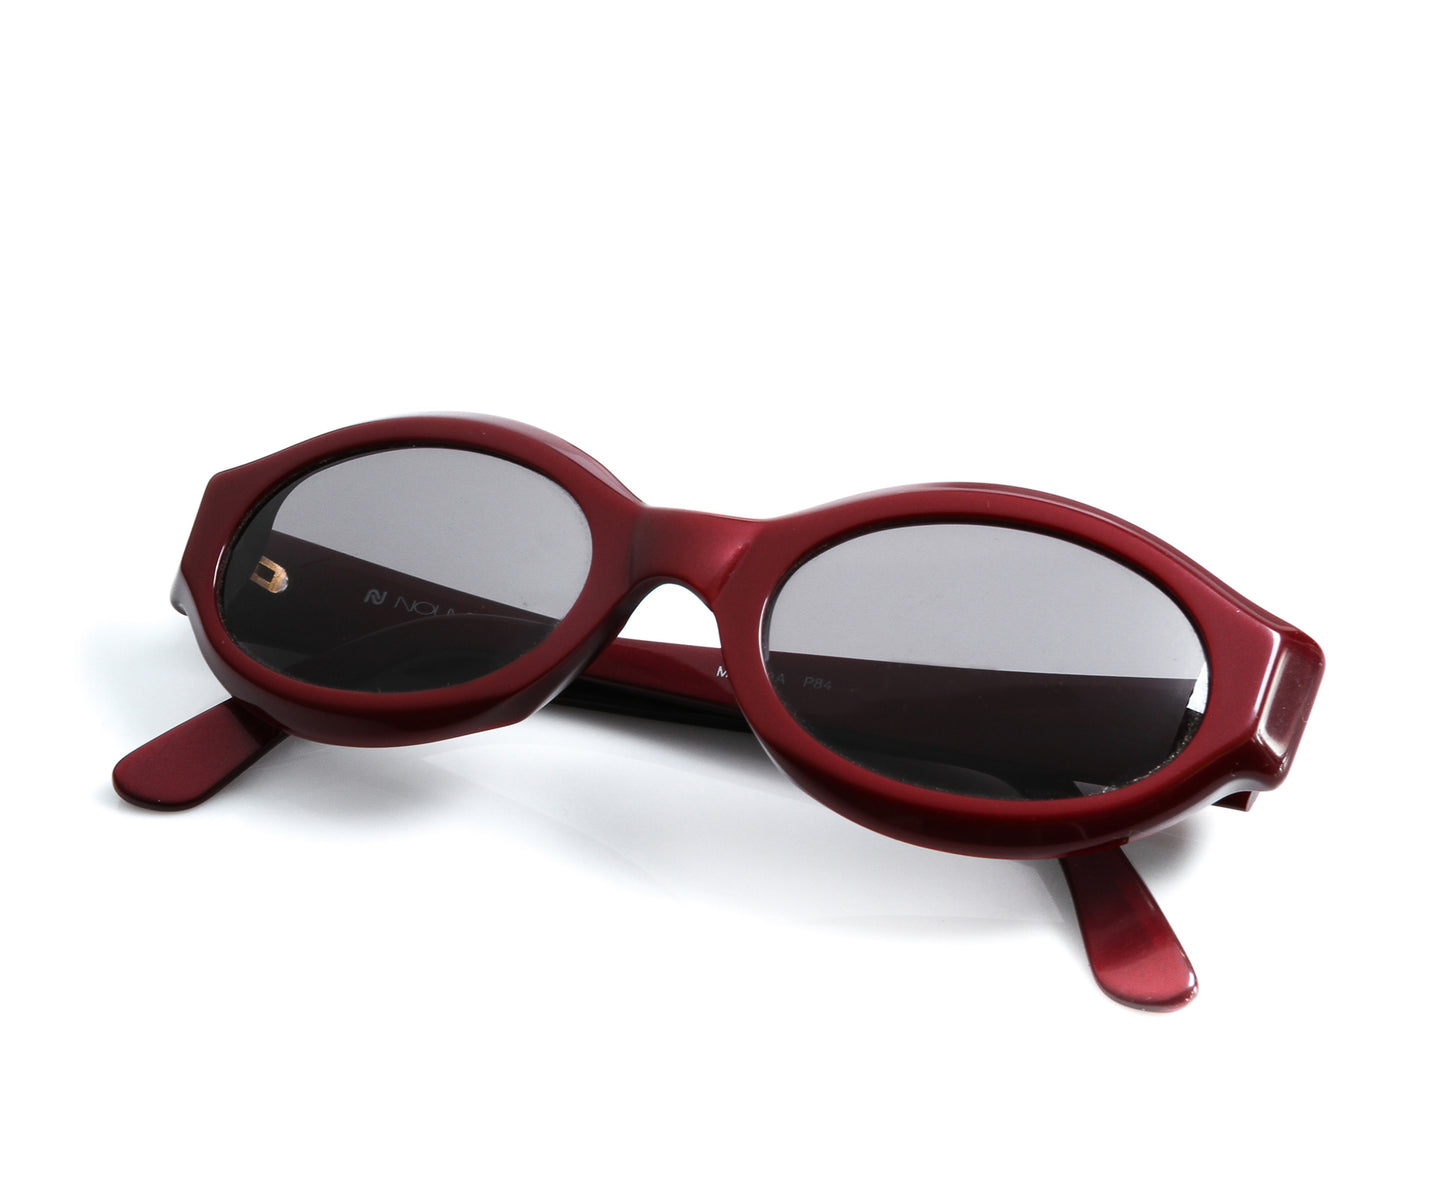 Nouvelle Vague Matilda P84, Nouvelle Vague , glasses frames, eyeglasses online, eyeglass frames, mens glasses, womens glasses, buy glasses online, designer eyeglasses, vintage sunglasses, retro sunglasses, vintage glasses, sunglass, eyeglass, glasses, lens, vintage frames company, vf